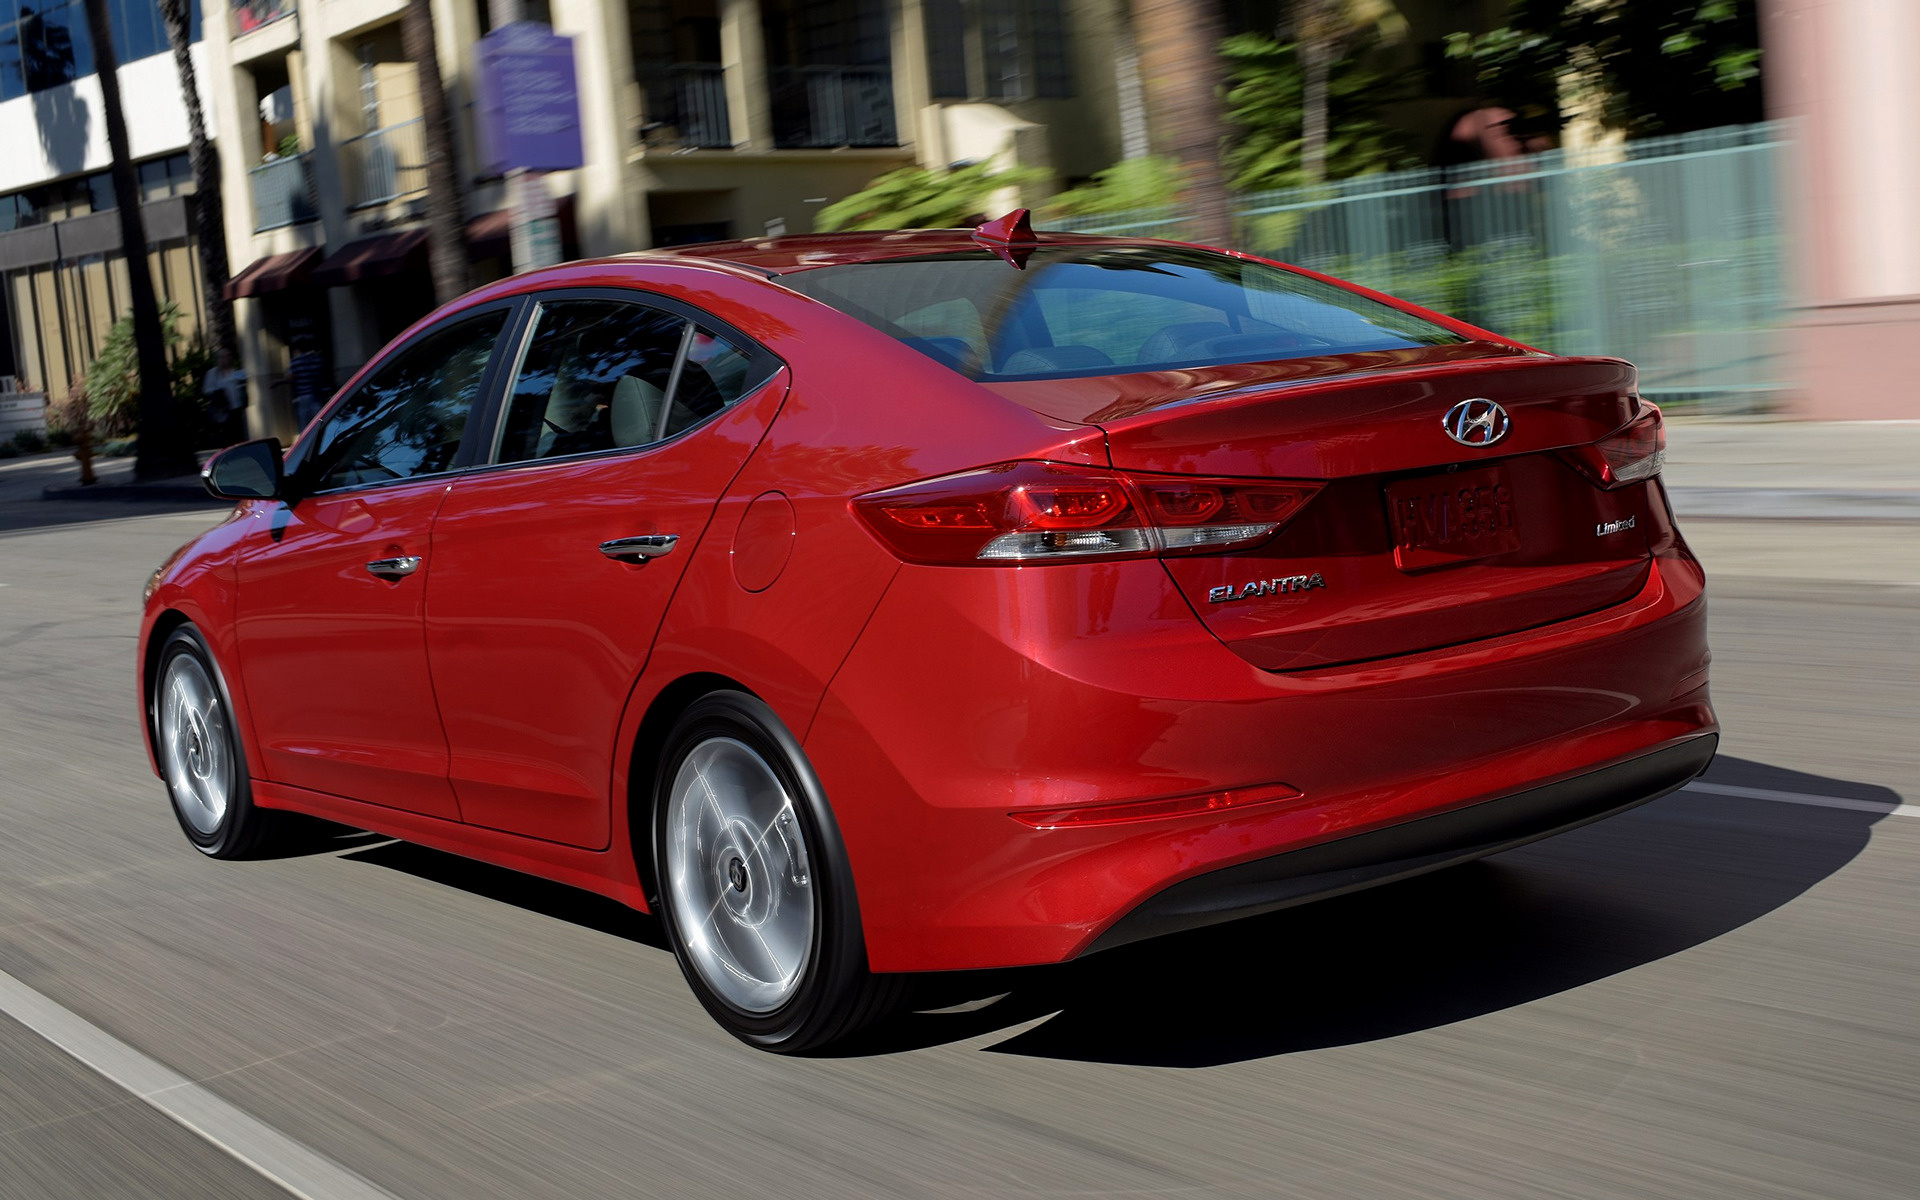 2016 Hyundai Elantra Limited >> 2017 Hyundai Elantra Limited (US) - Wallpapers and HD